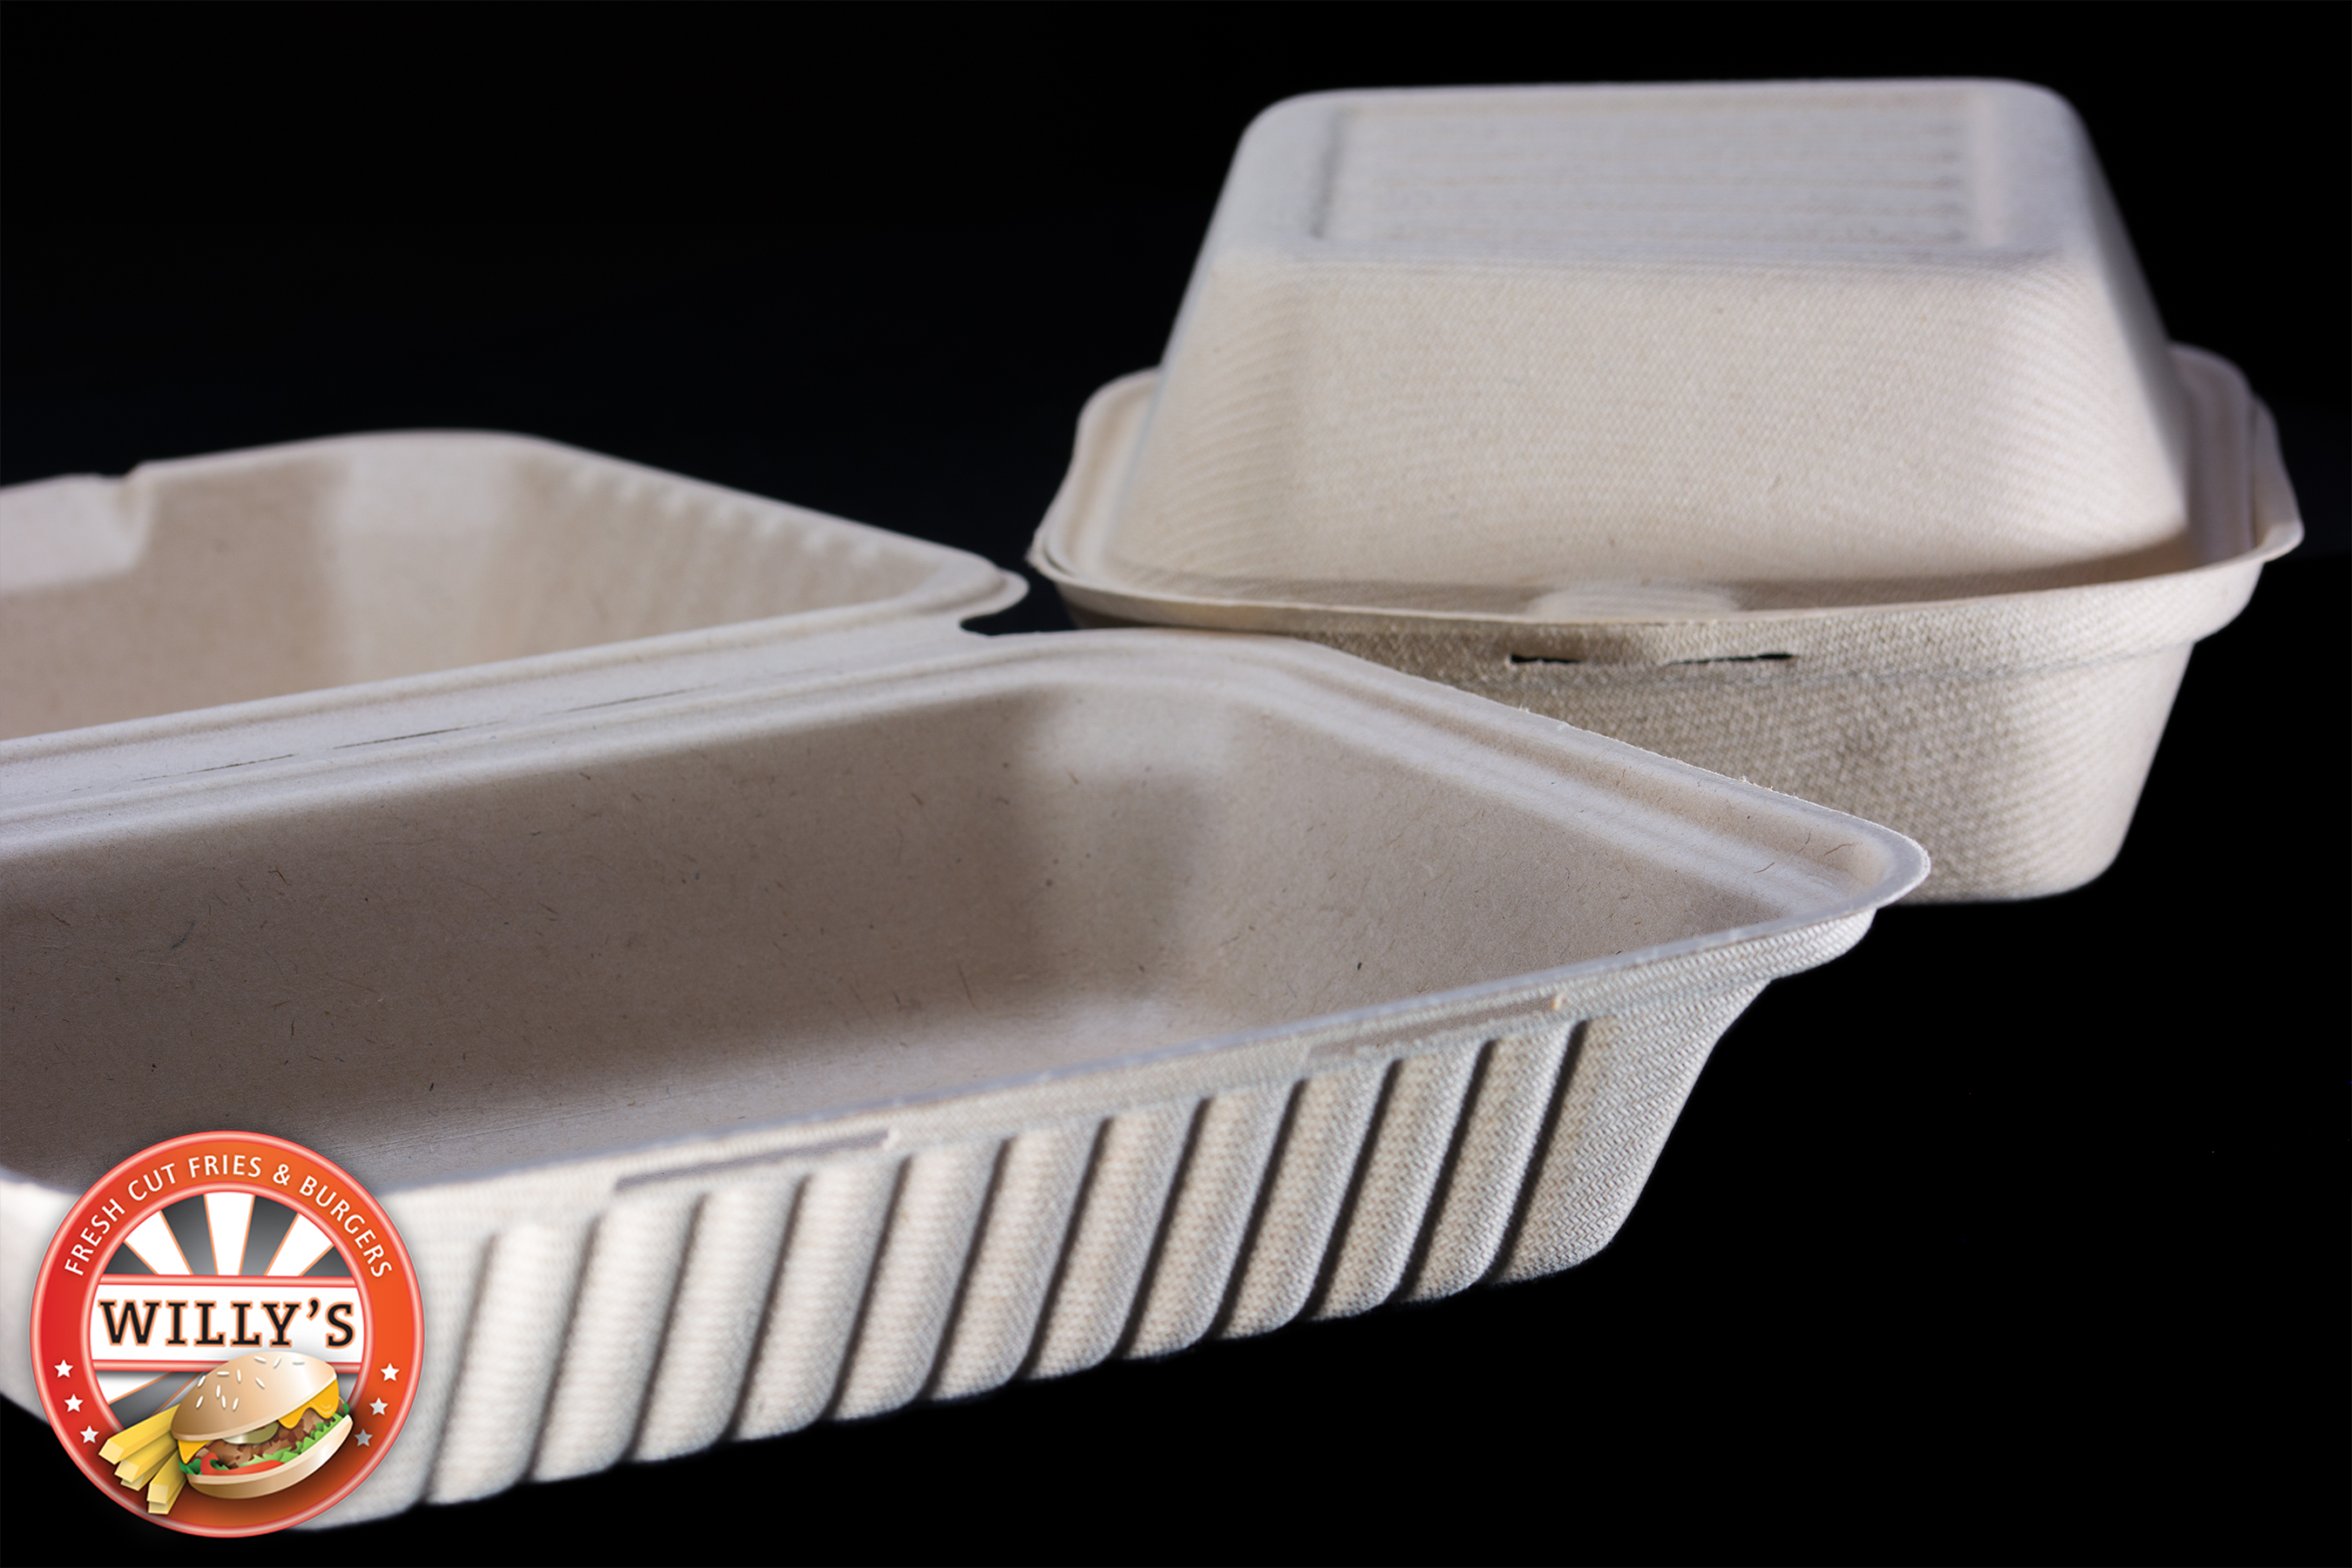 Willy's Gets Biodegradable Containers